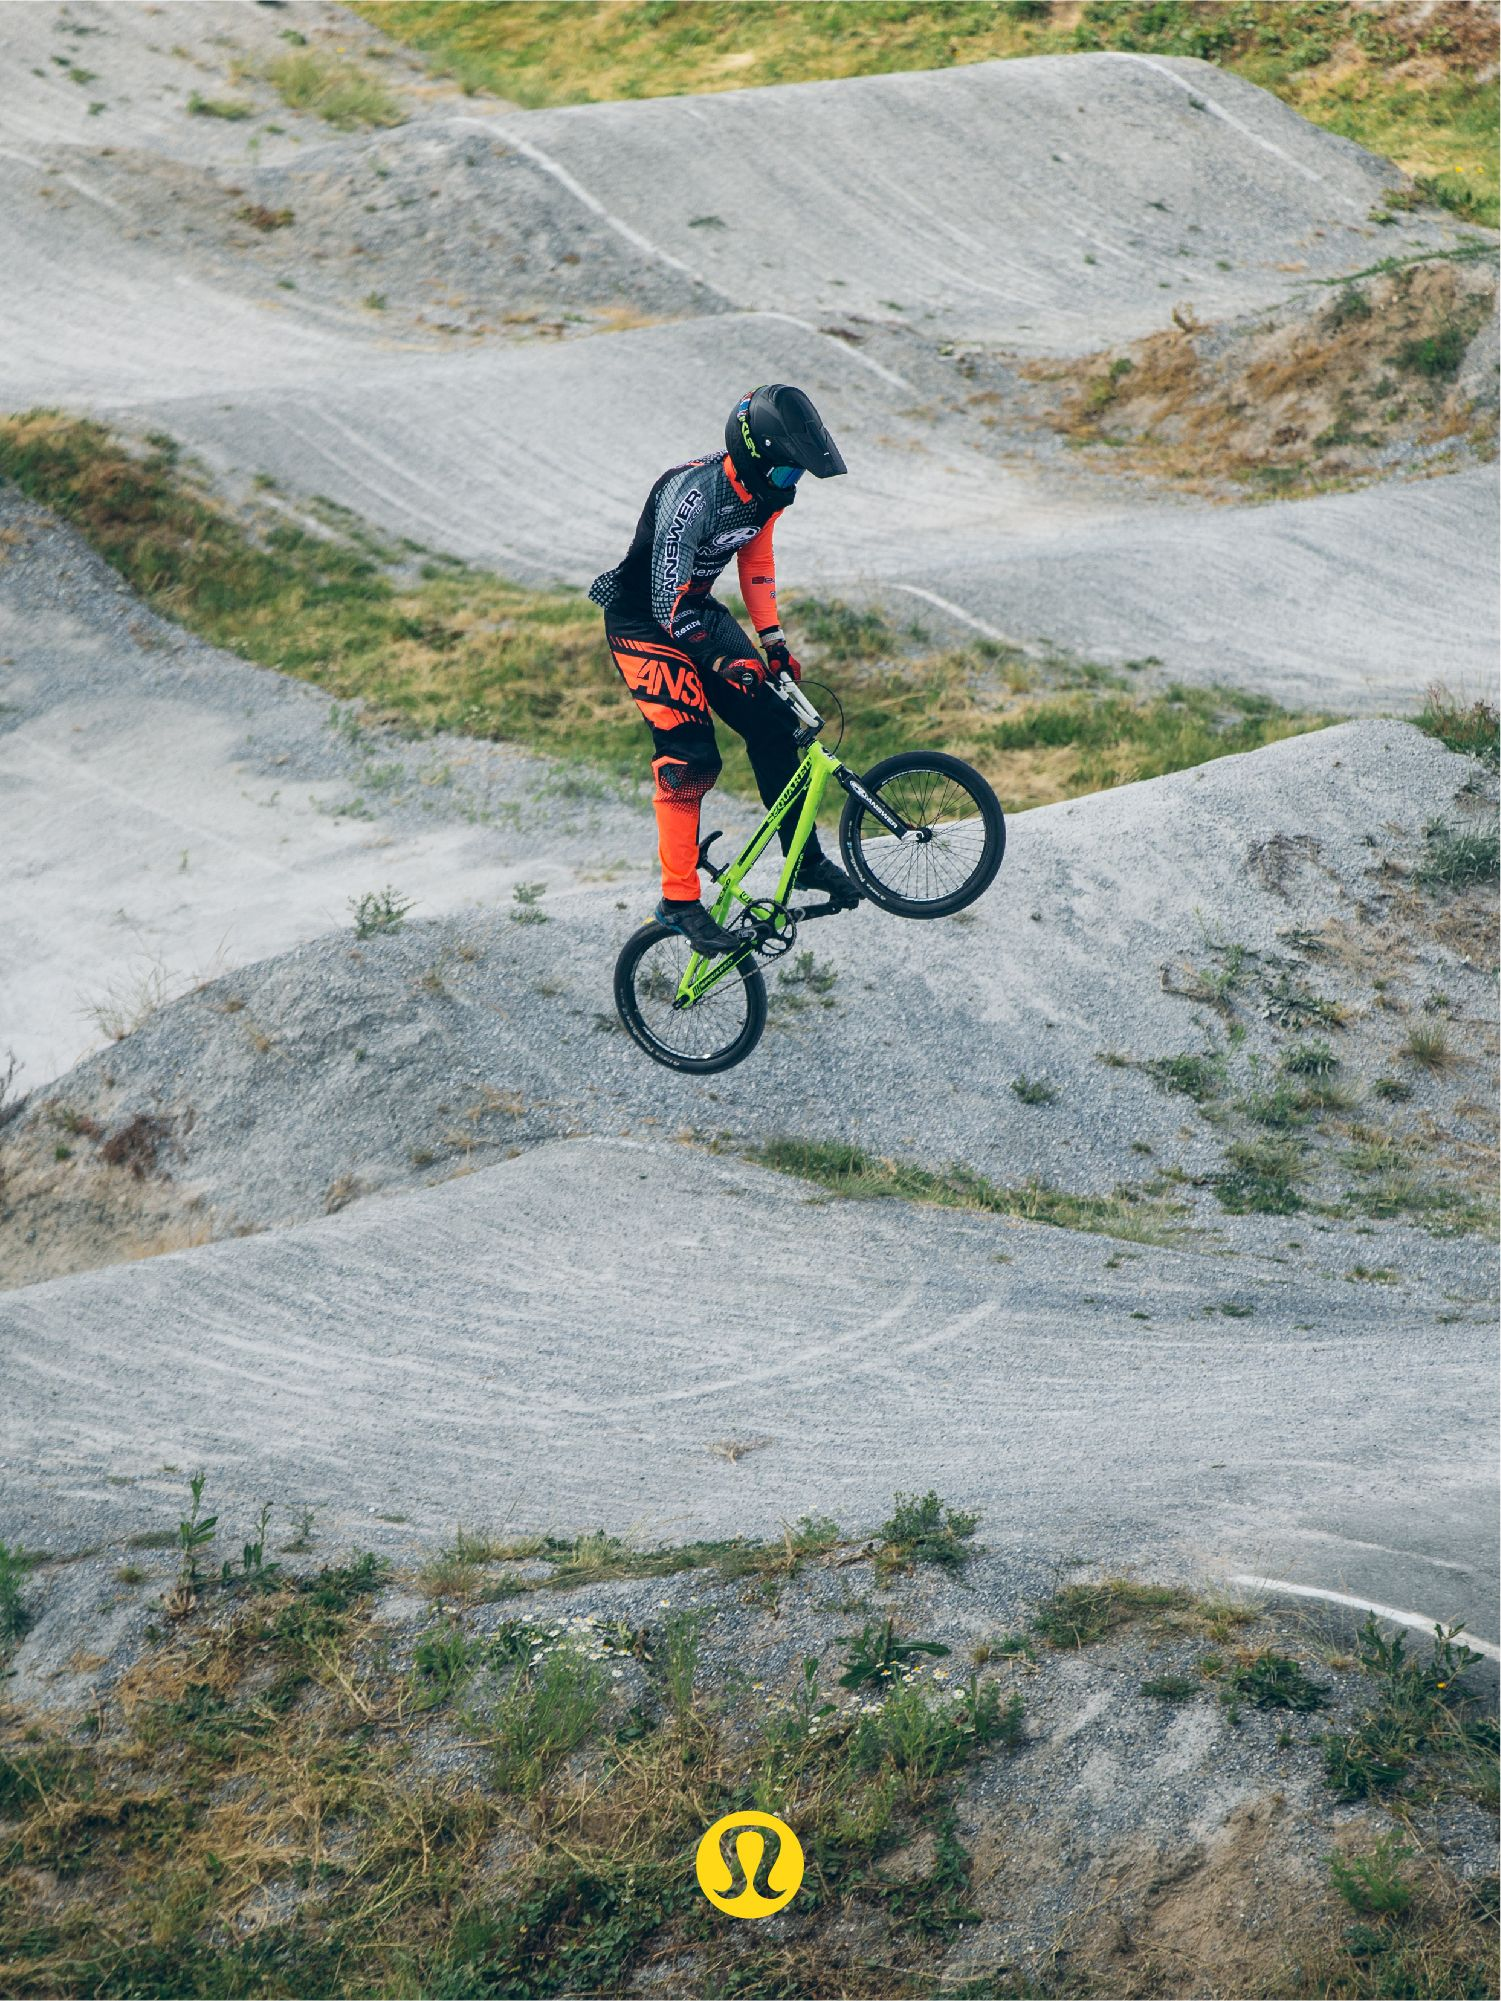 BMX racer and elite ambassador, Tory Nyhaug, finds success between fast laps and relaxing moments.